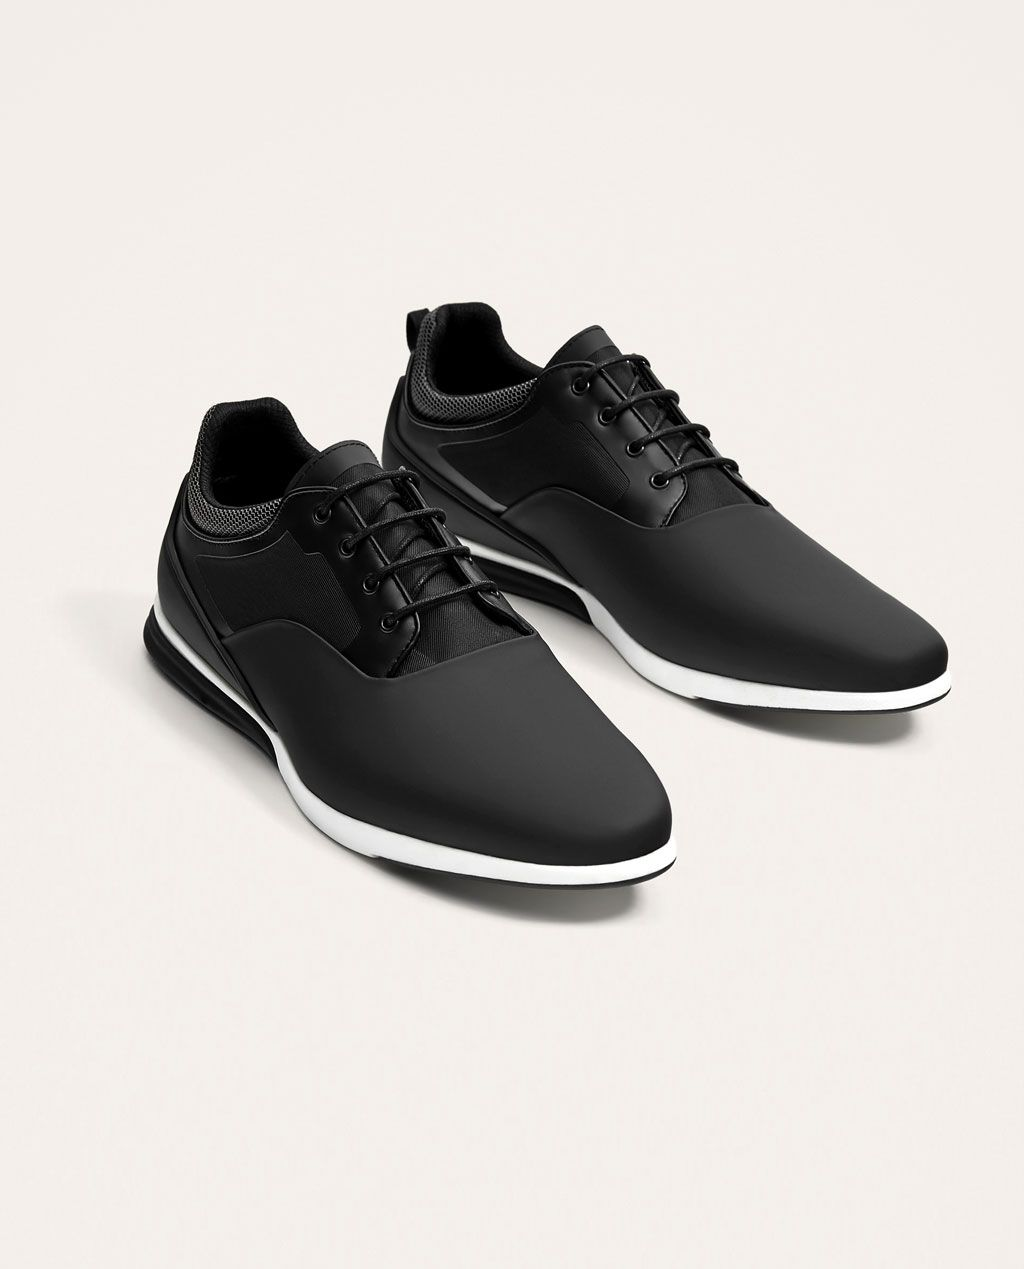 Image 1 of BLACK SNEAKERS from Zara Black Sneakers c7f6c3267